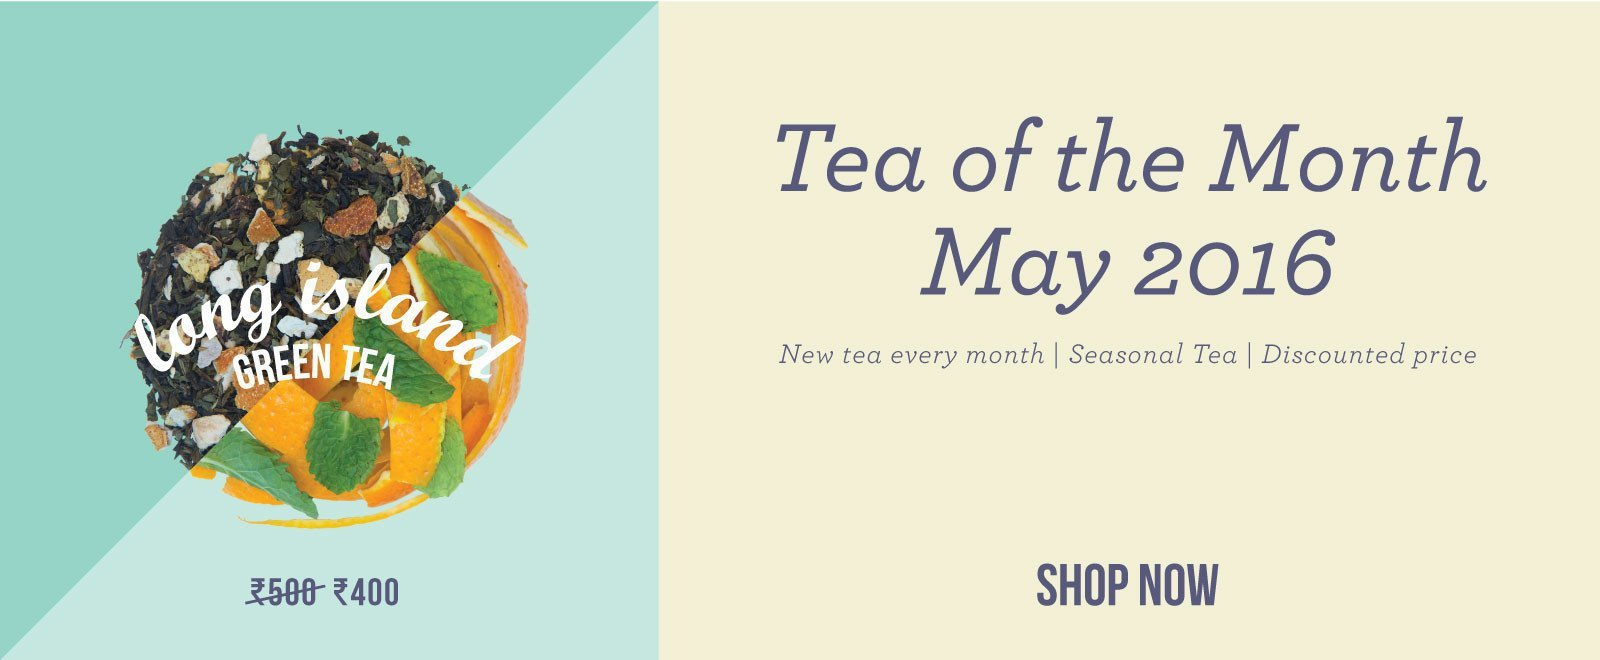 Tea of the Month - Long Island Green Tea